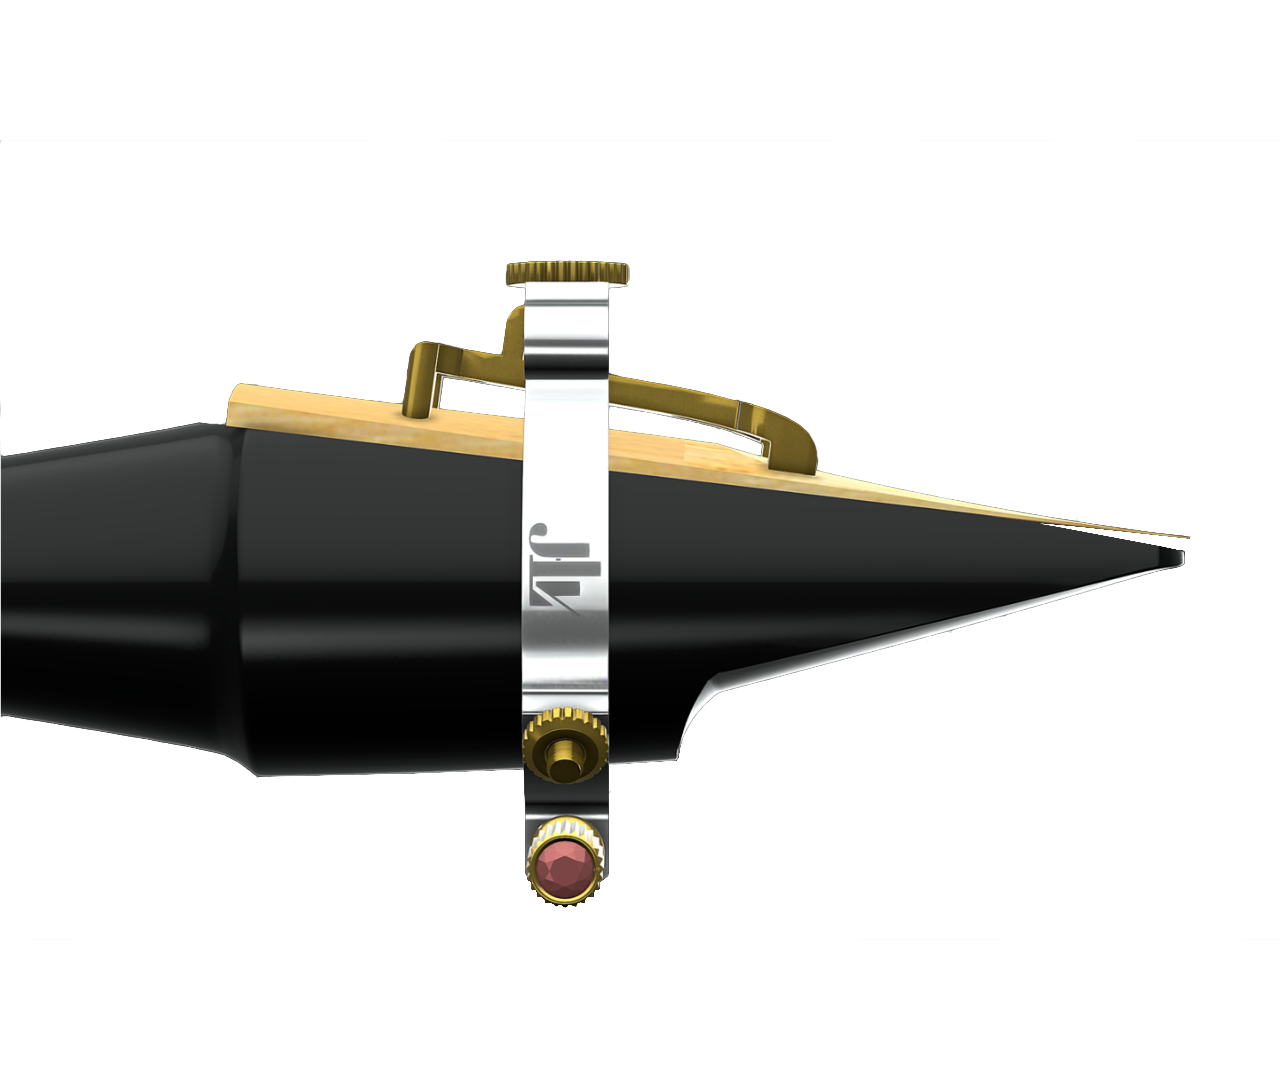 JLV ligature front view with saxophone mouthpiece and reed